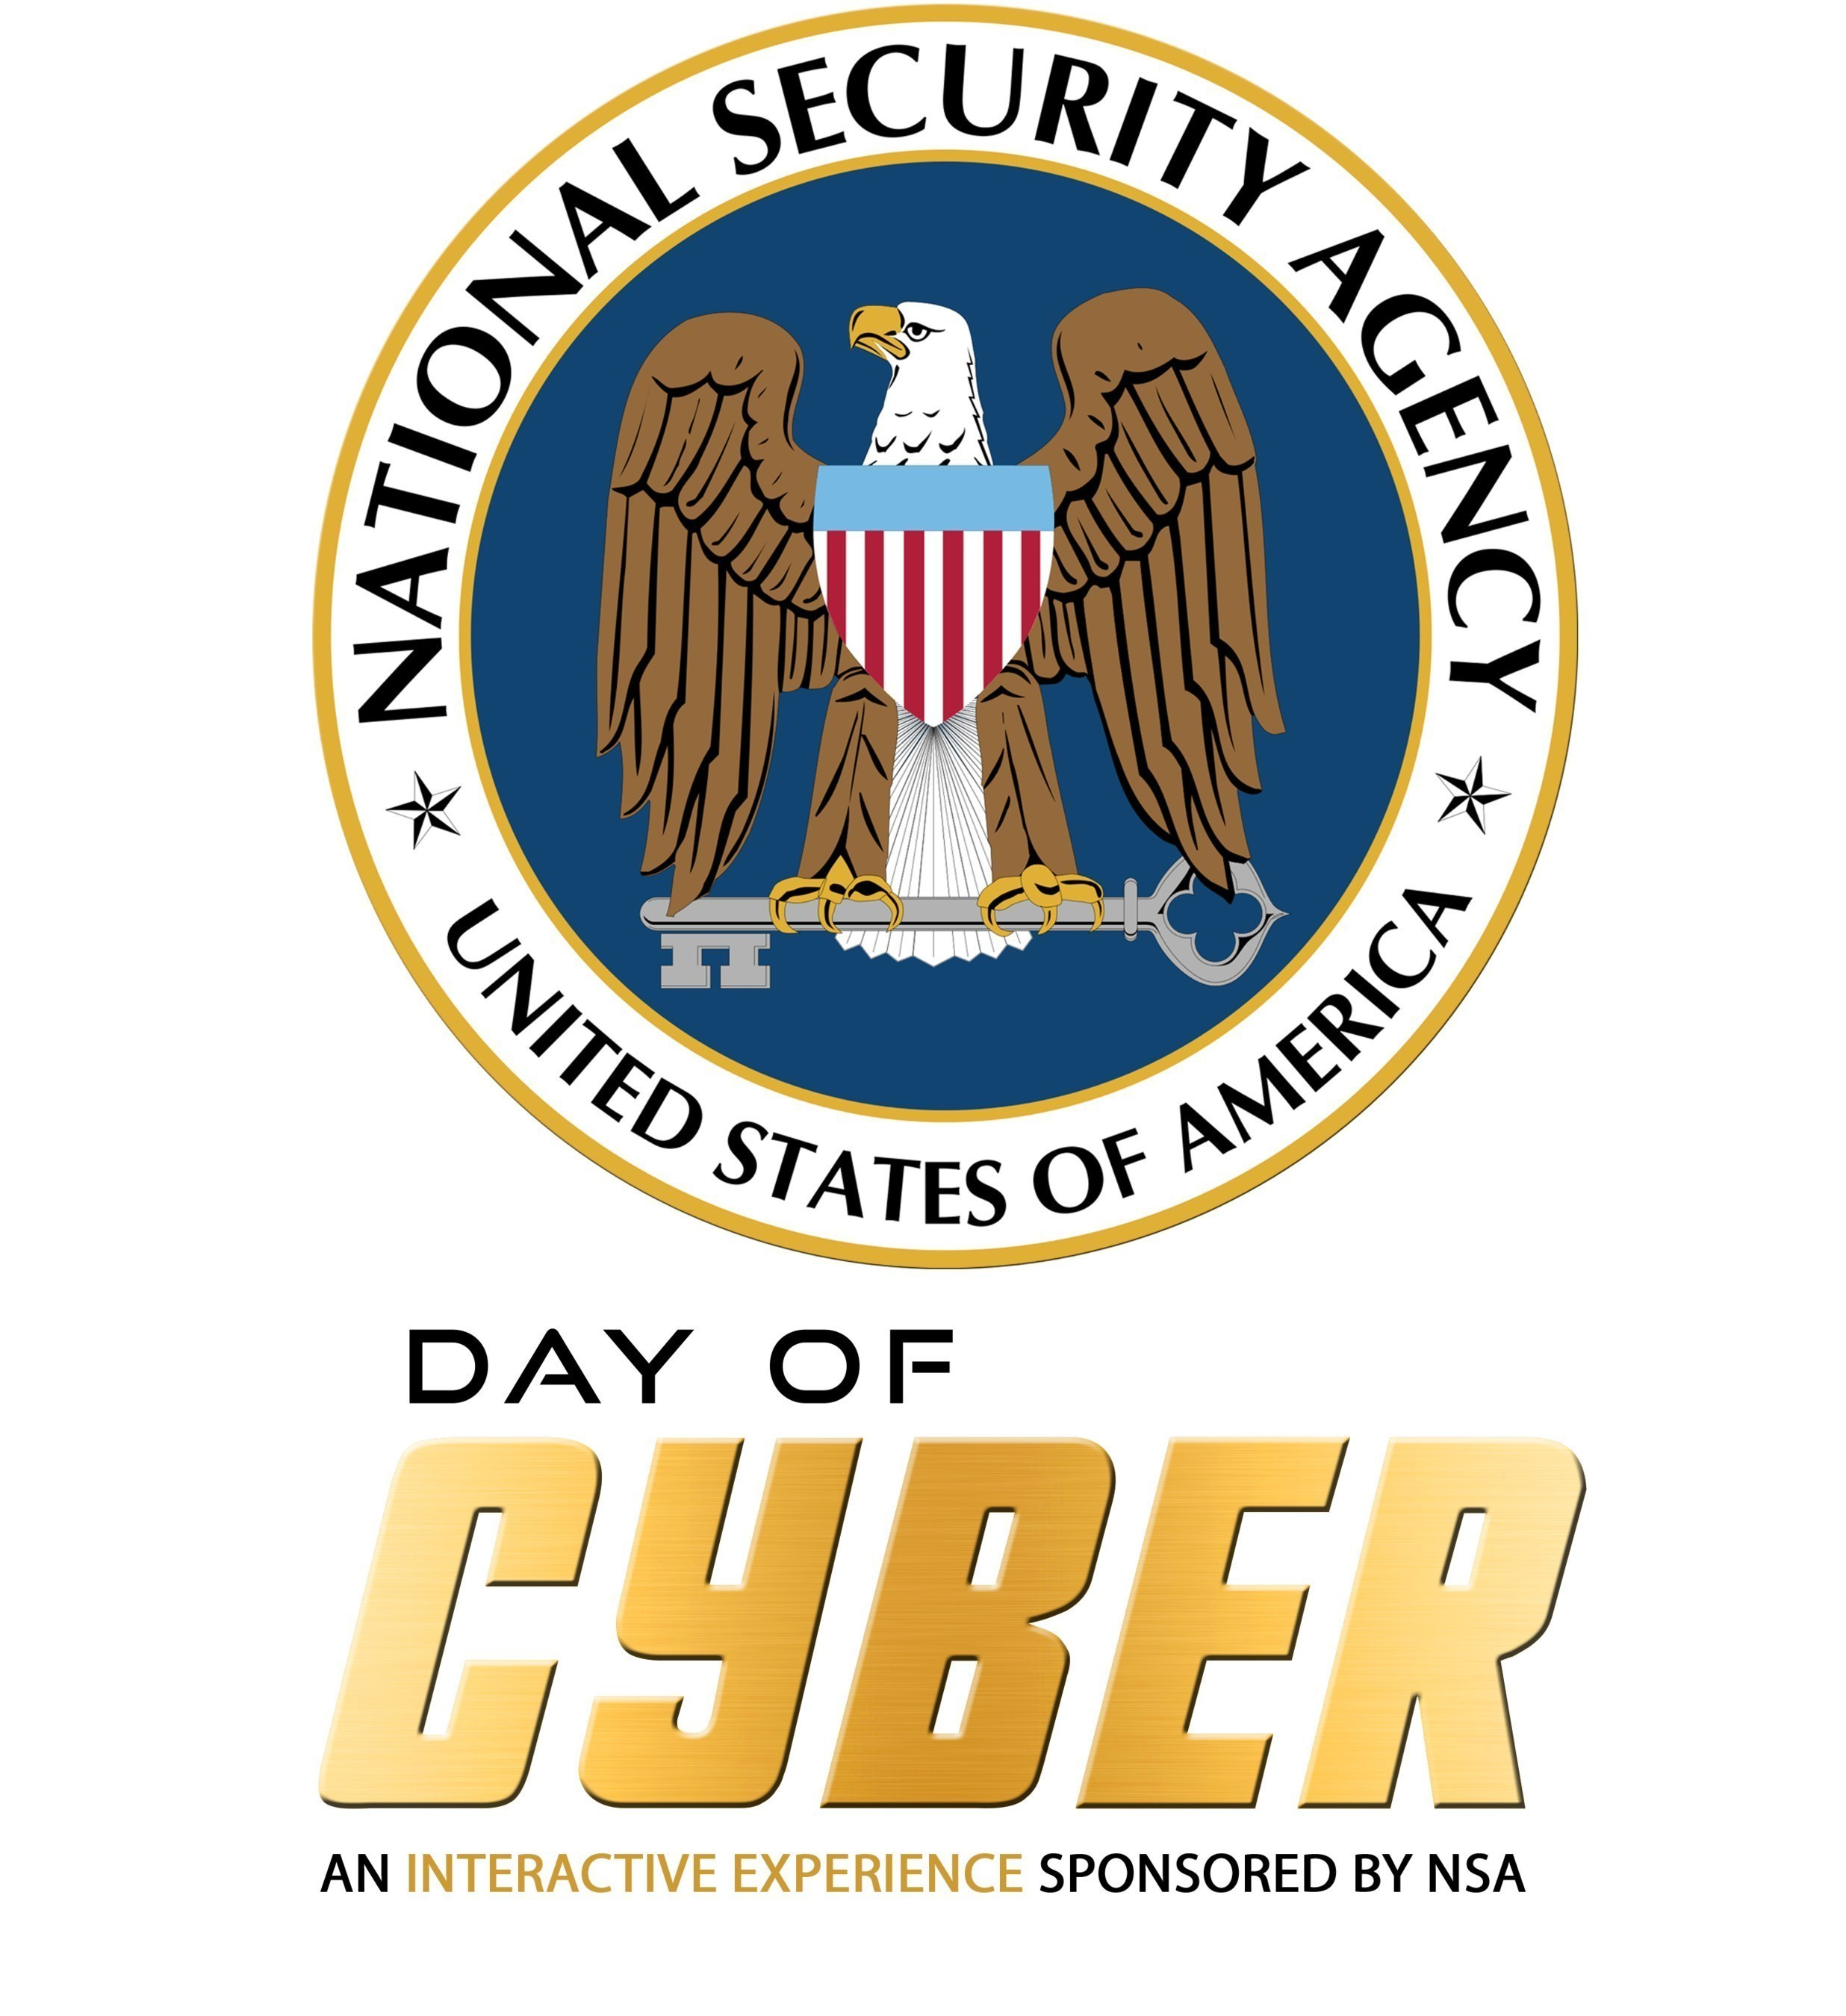 NSA Day of Cyber